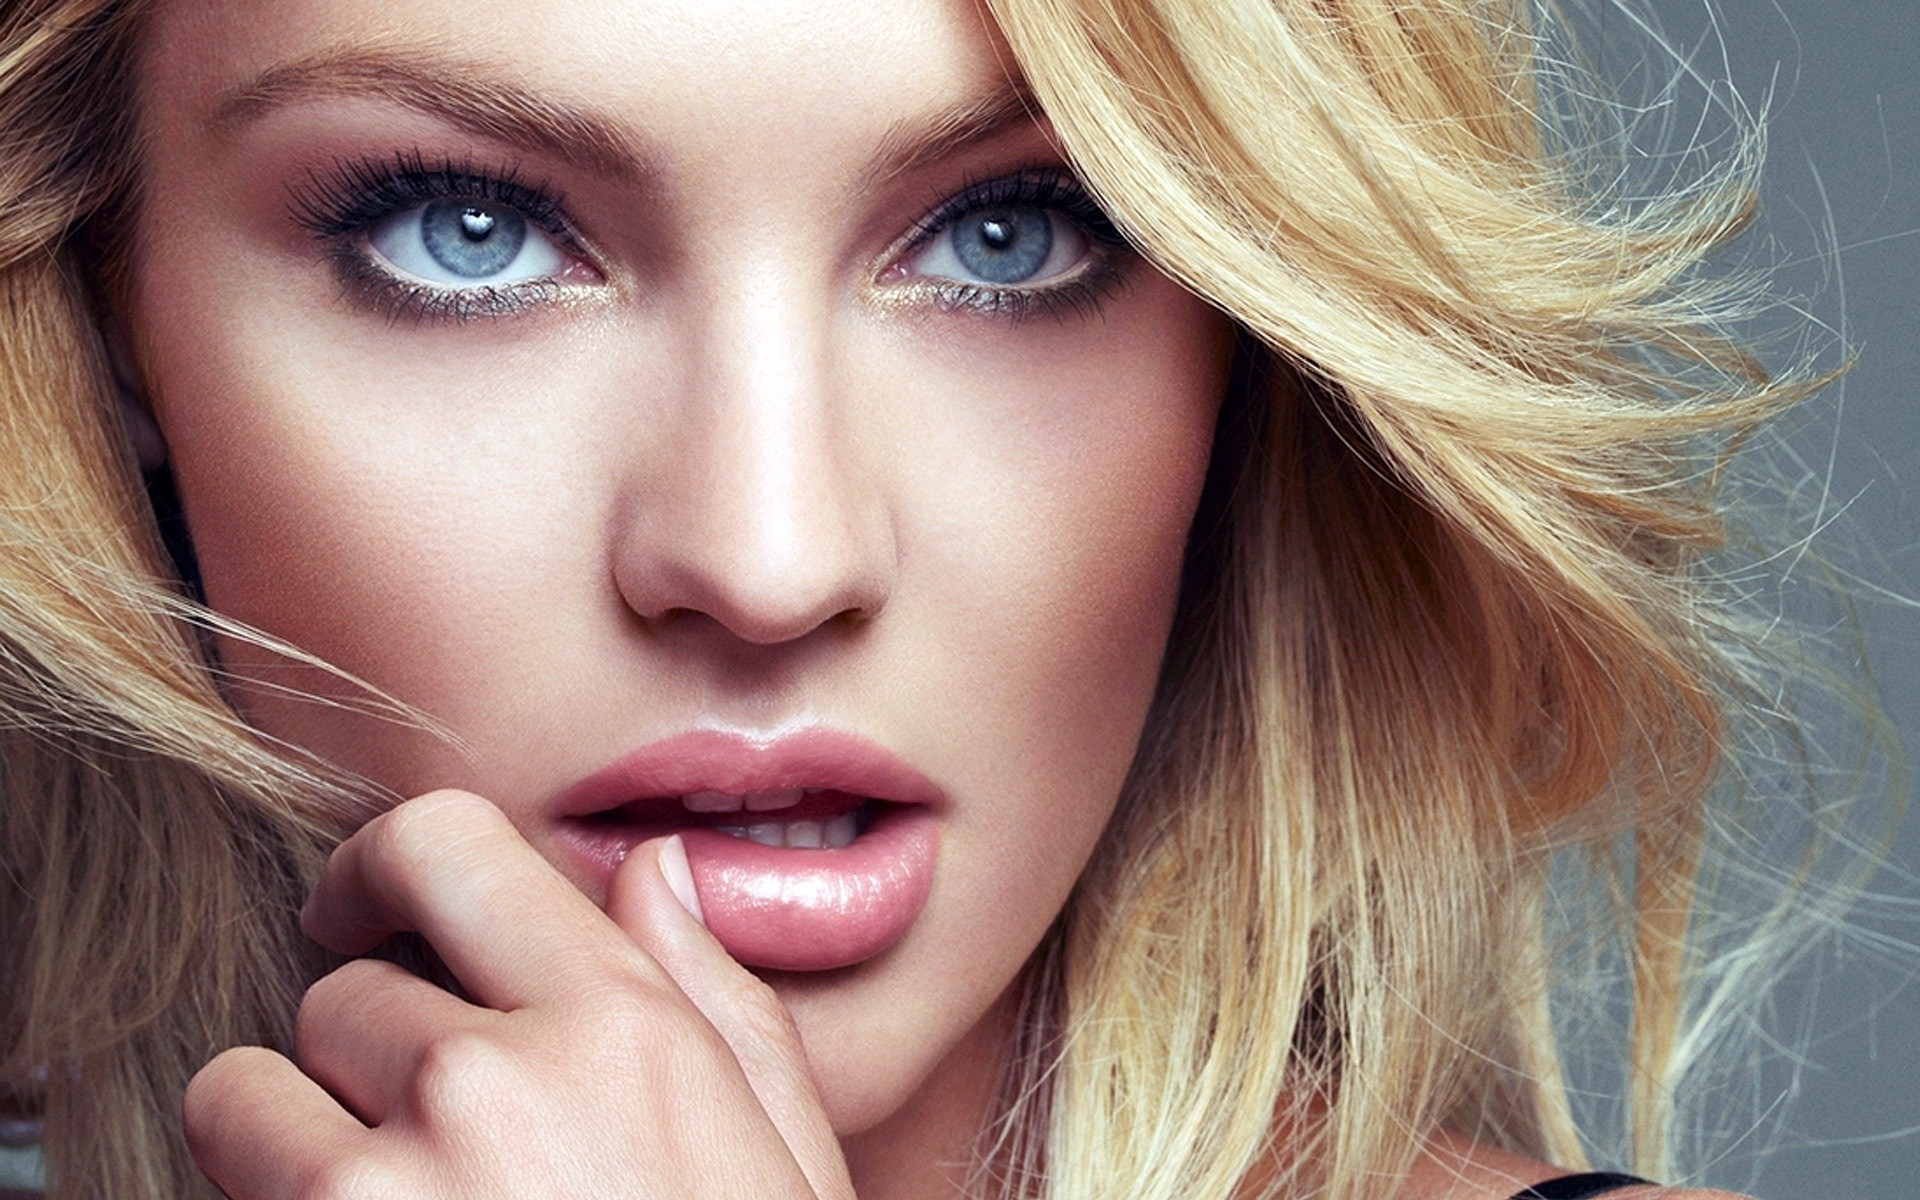 Candice-Swanepoel-Pictures-wallpaper-wp5804407